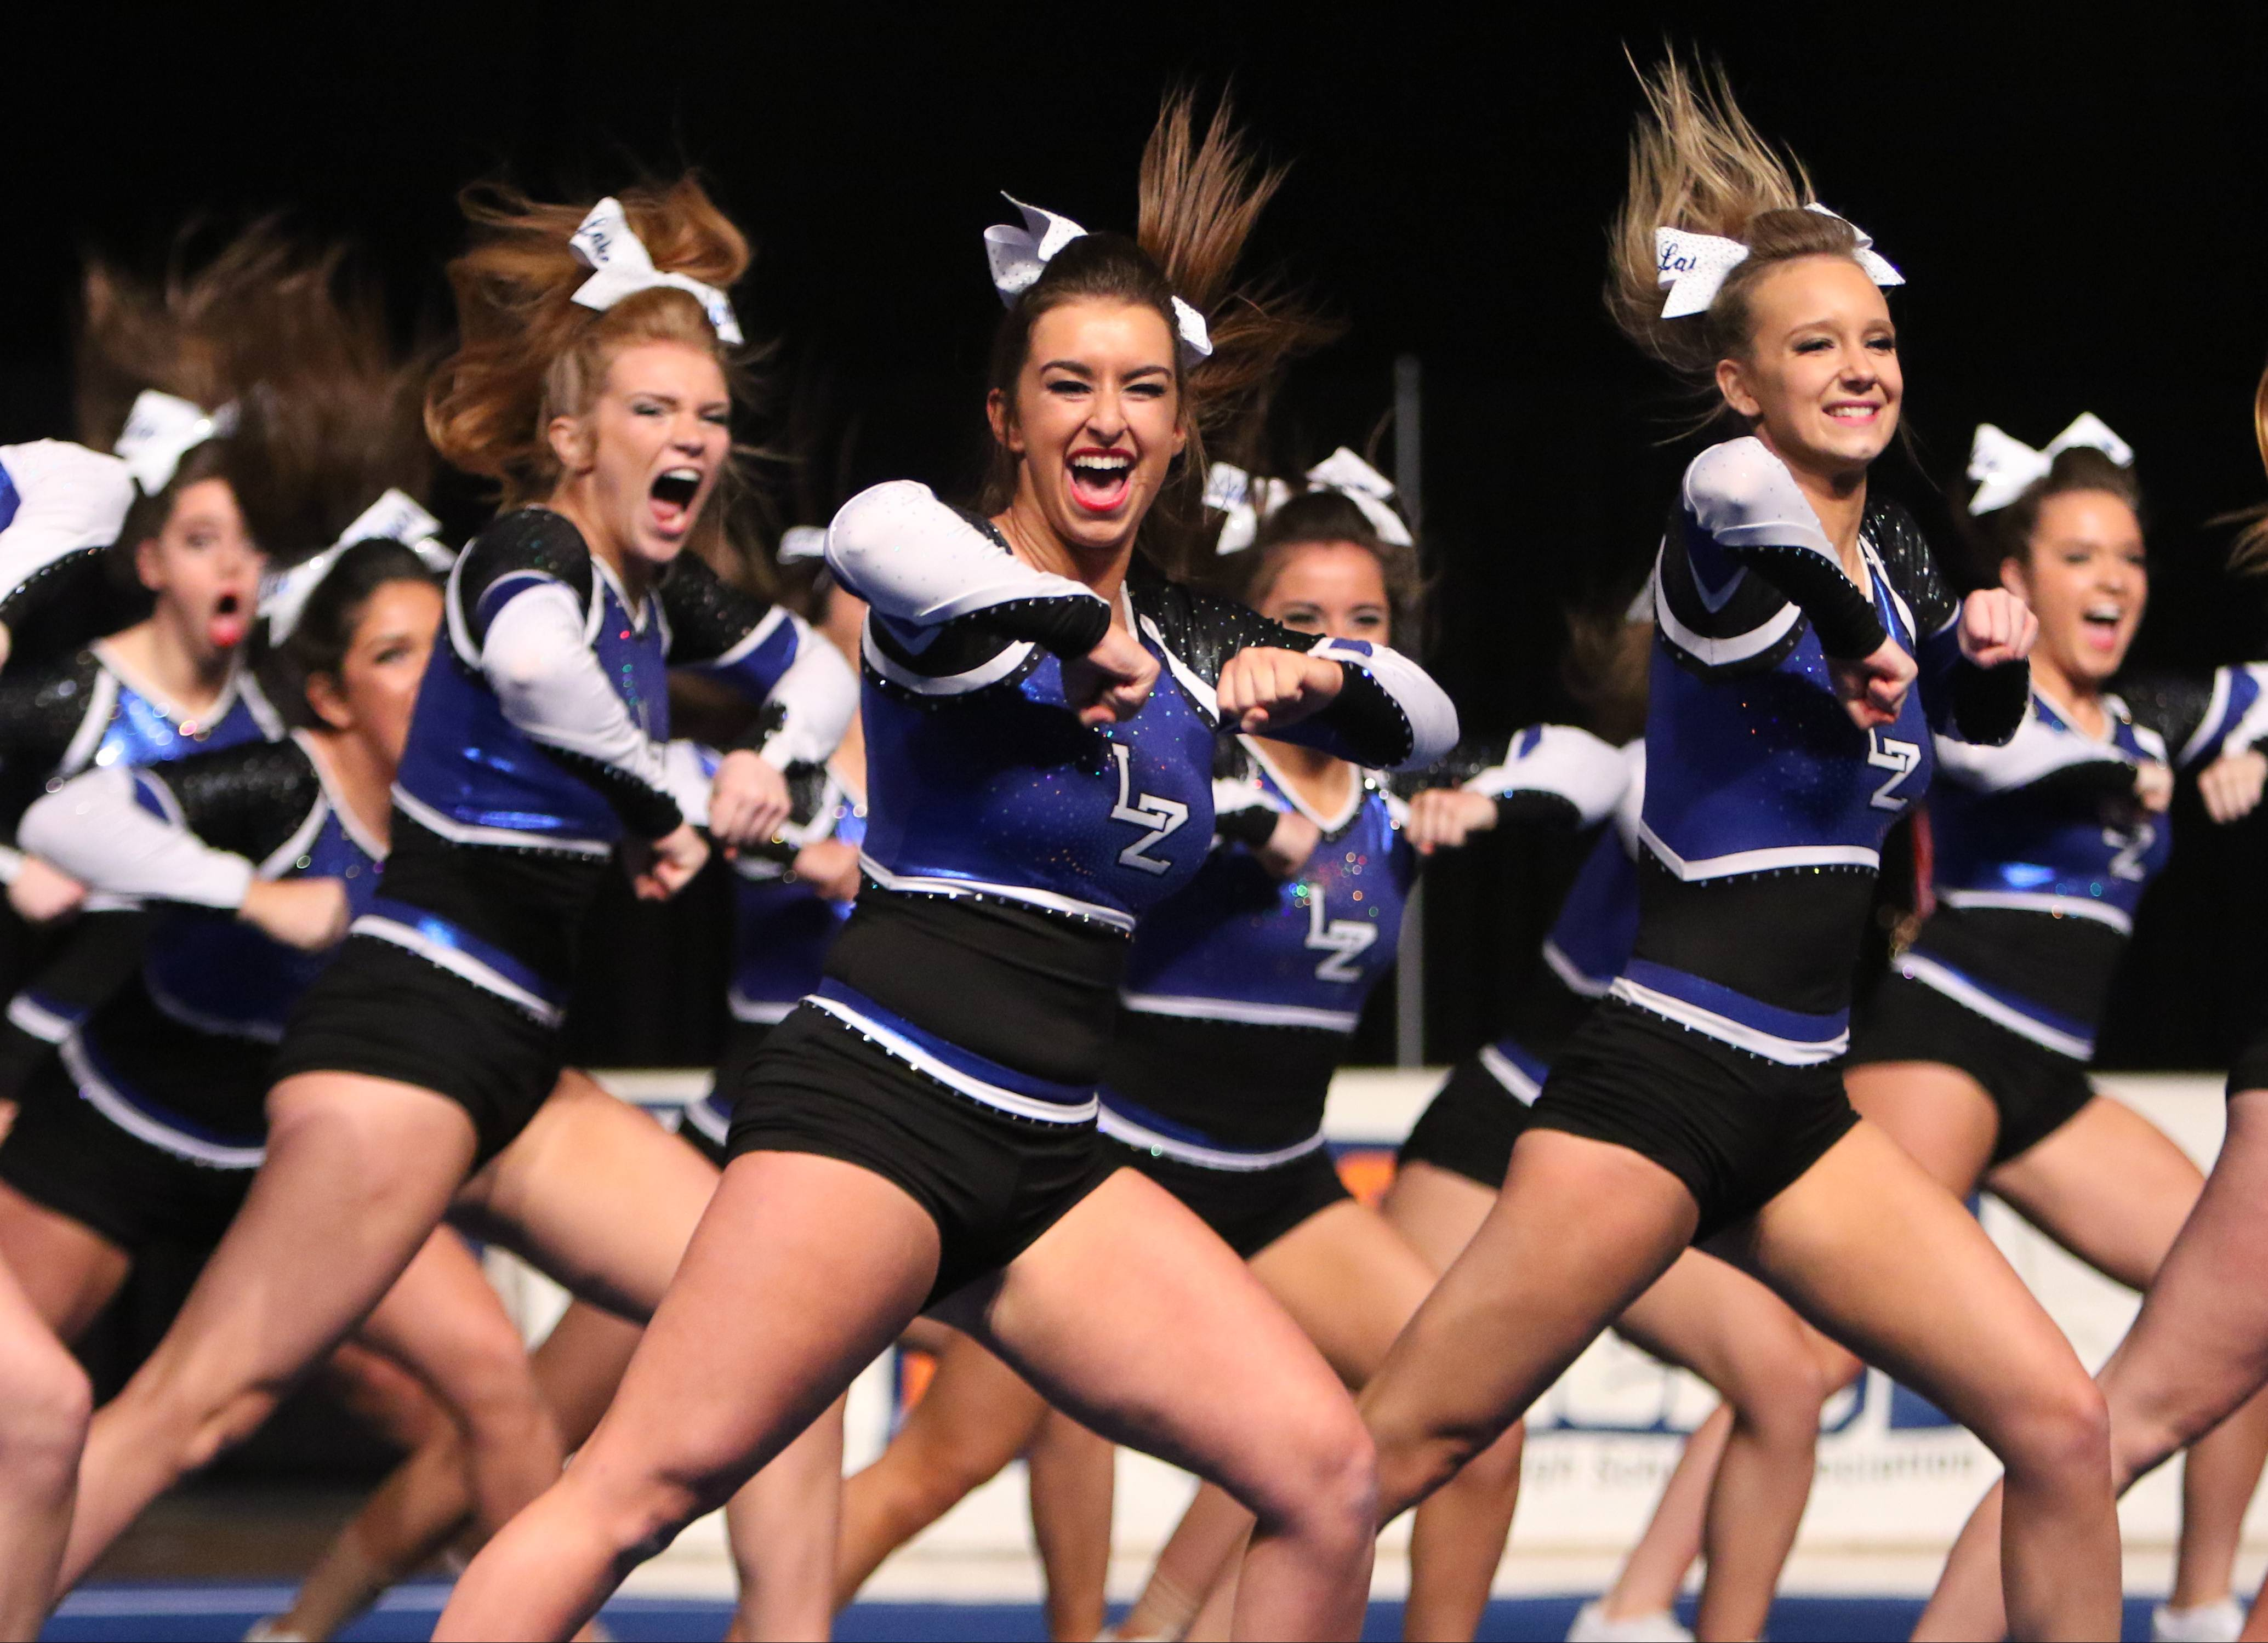 Lake Zurich High School competes in the state cheerleading finals Saturday in Bloomington.